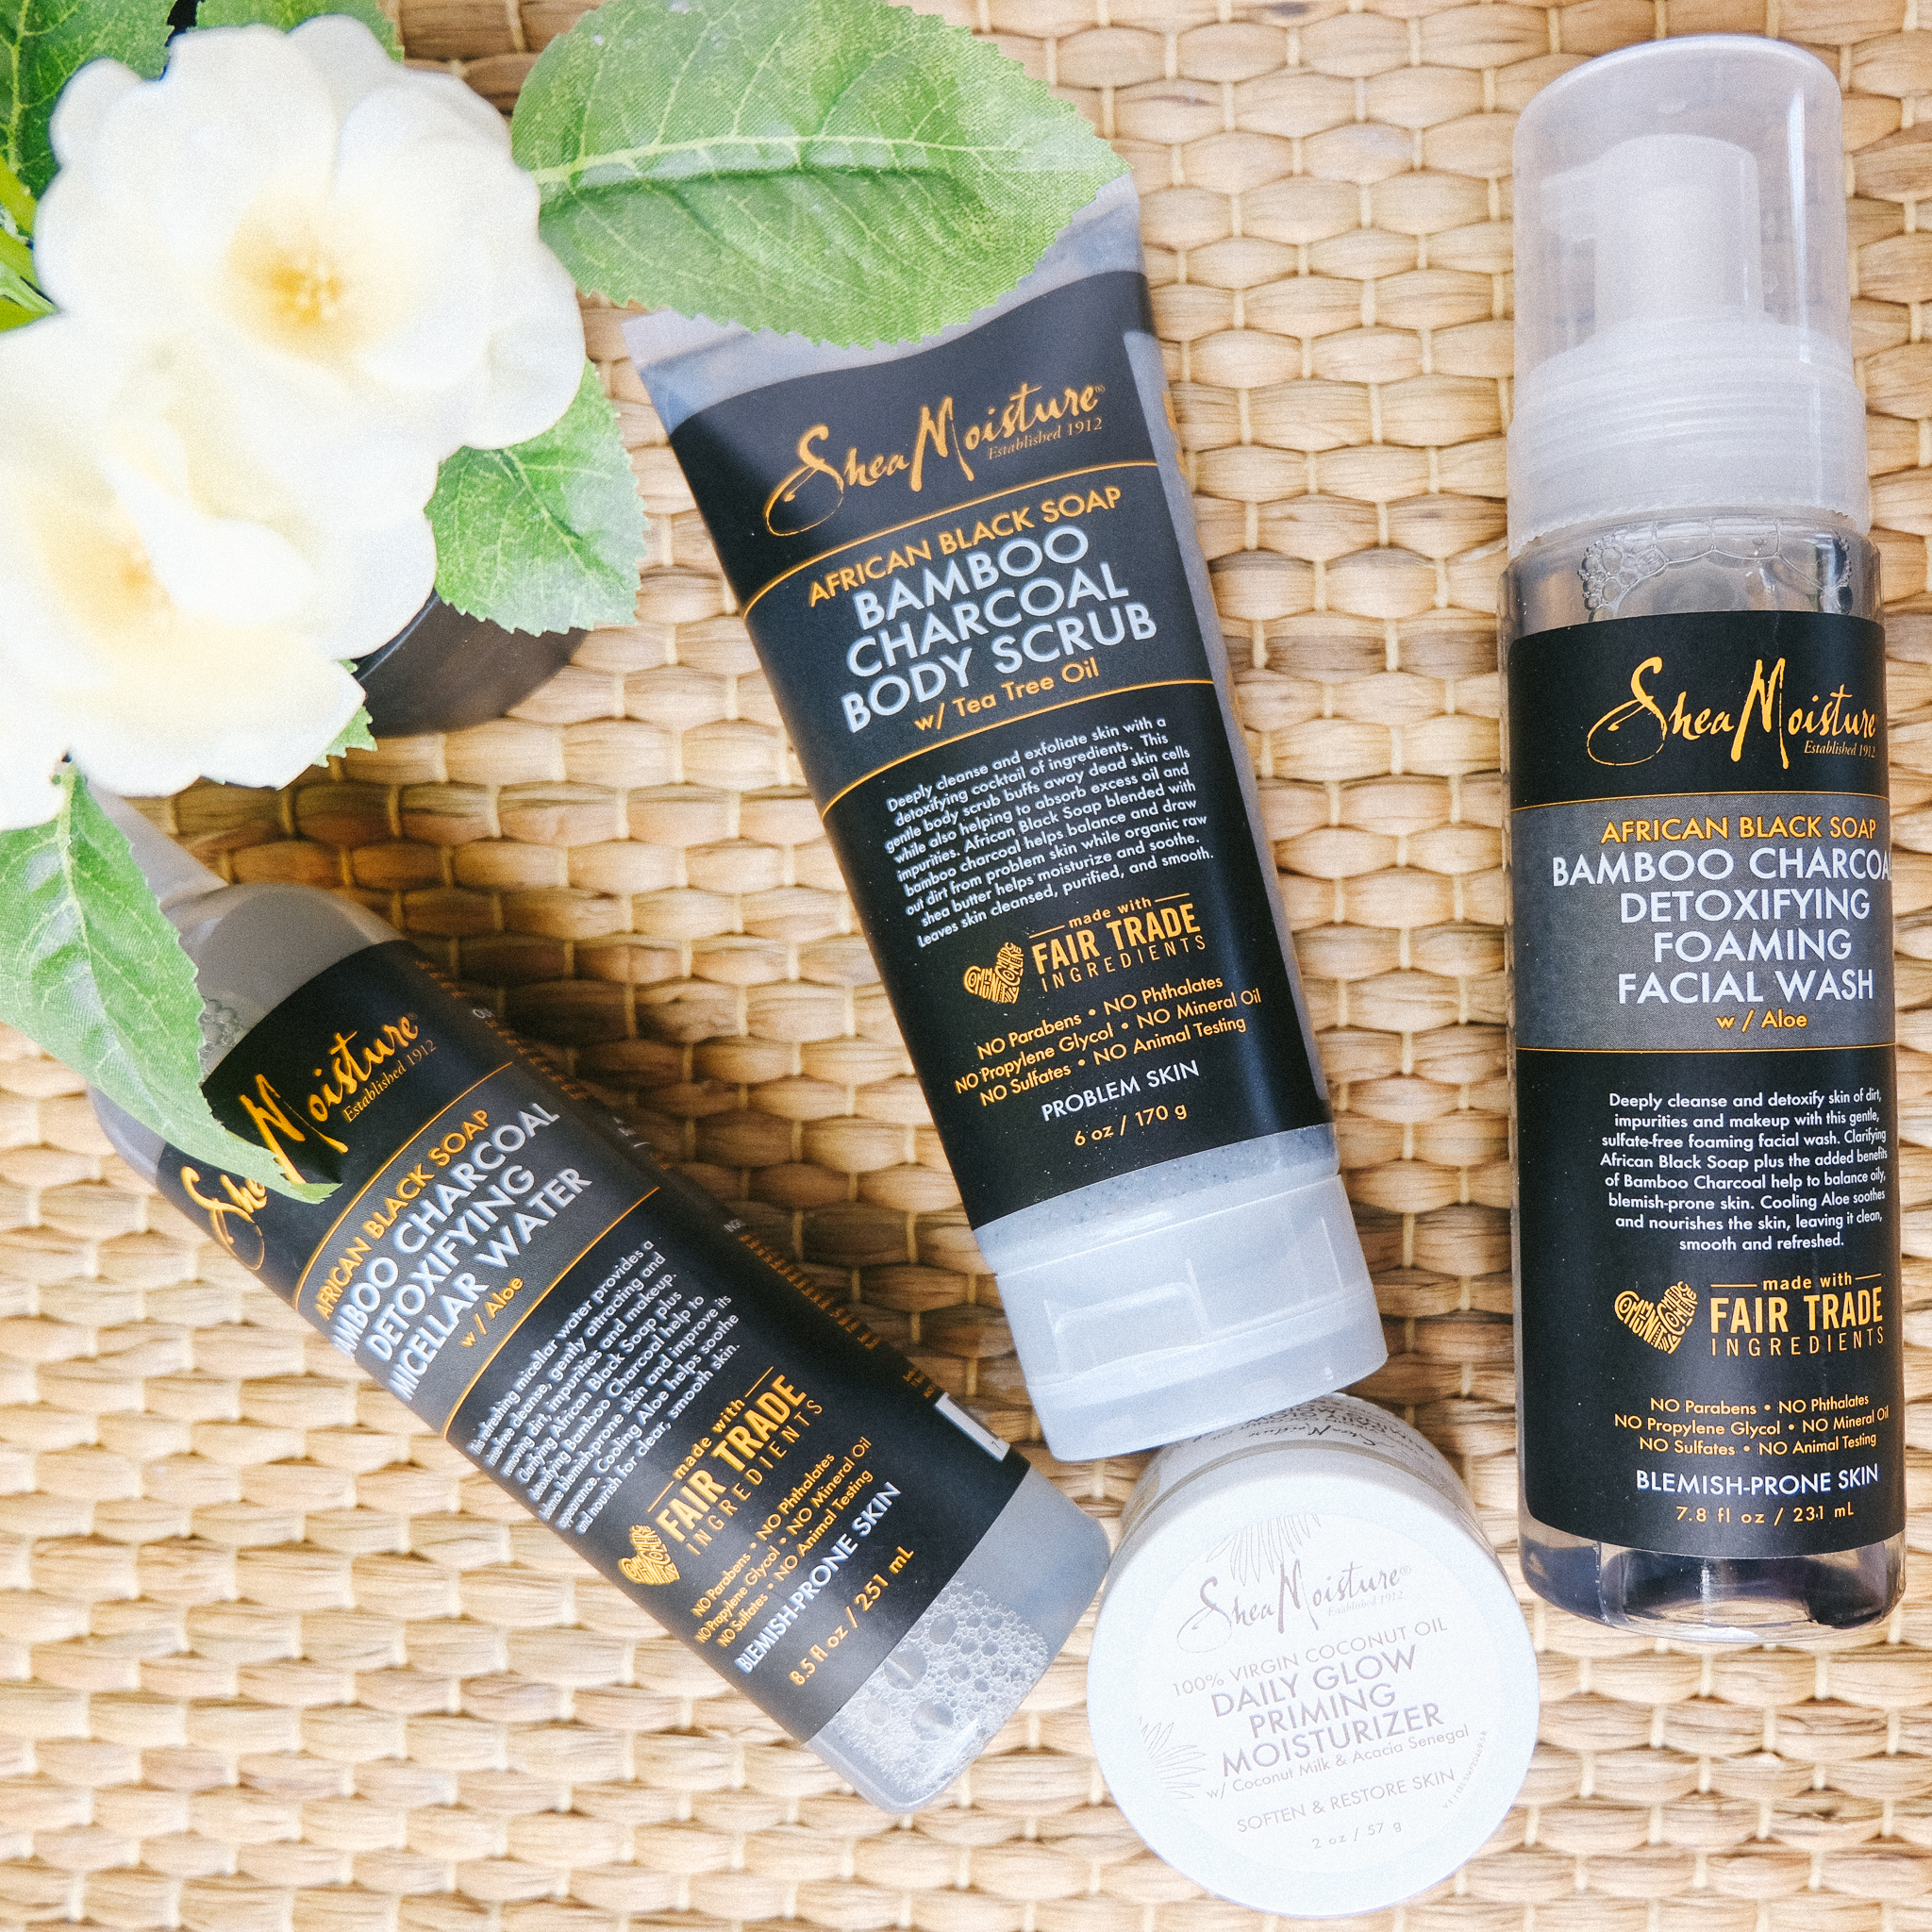 African Black Soap SheaMoisture Review: Keeping my Skin Clear